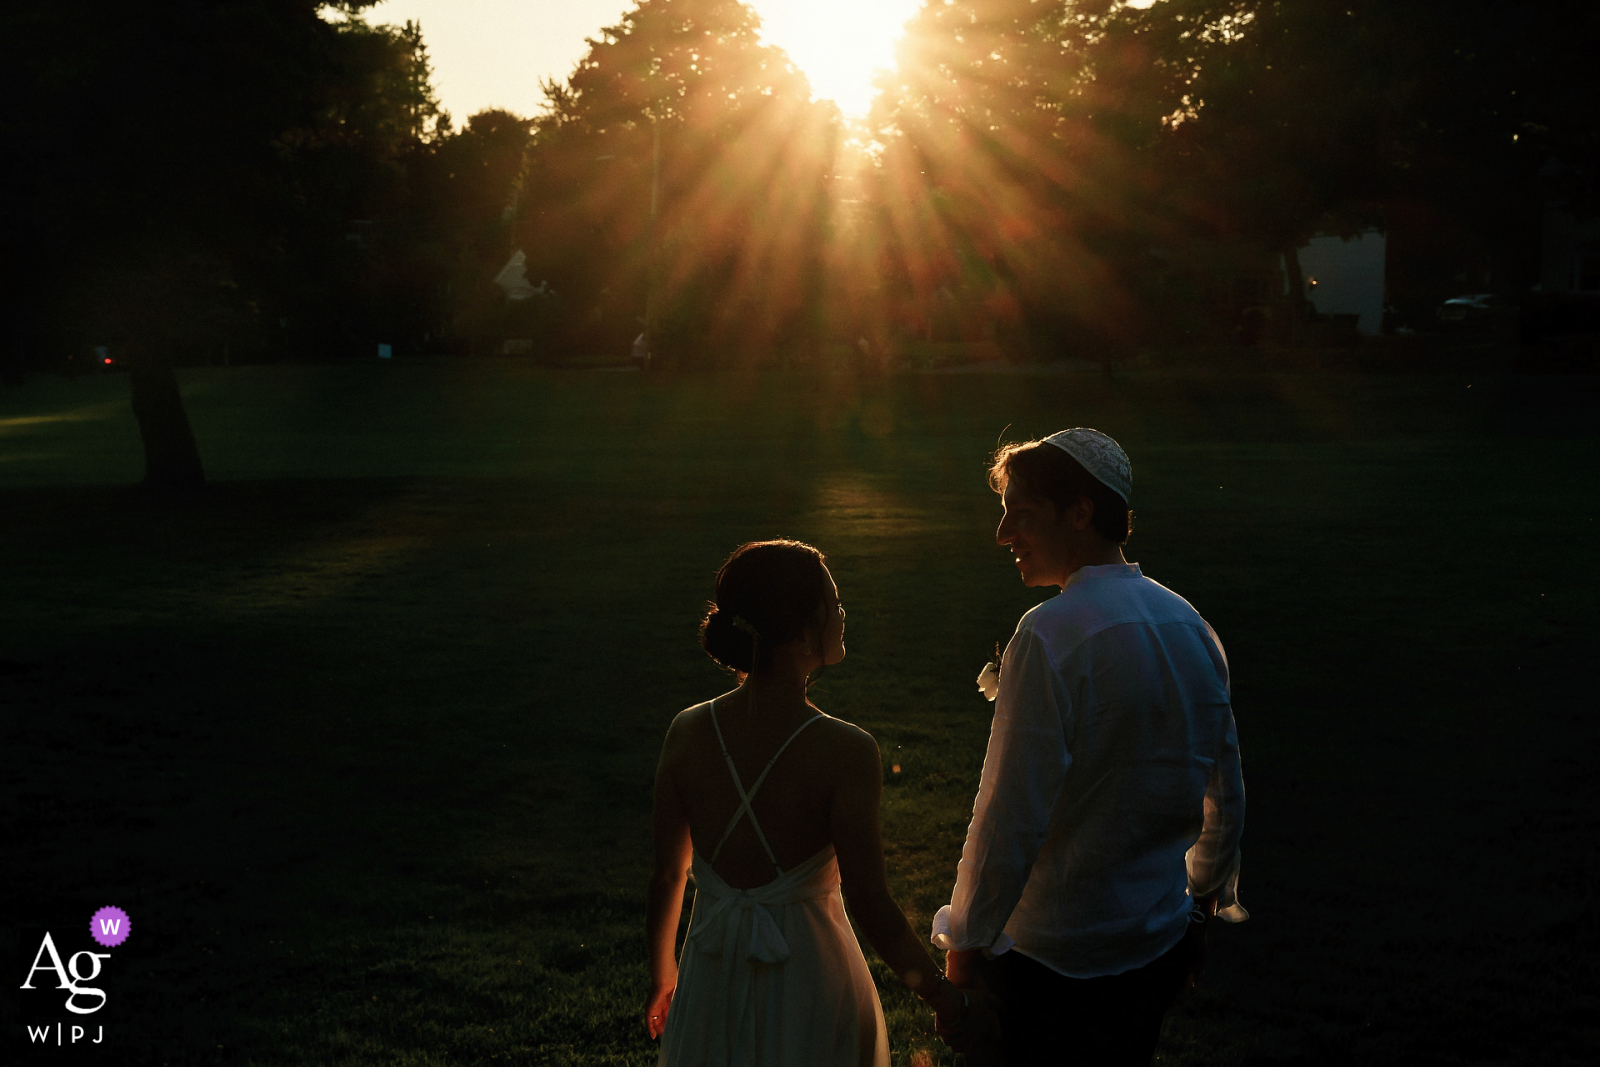 Endicott Estate, Dedham, MA artistic wedding picture with a Sunset vibes. During the reception - captured about 5 photos